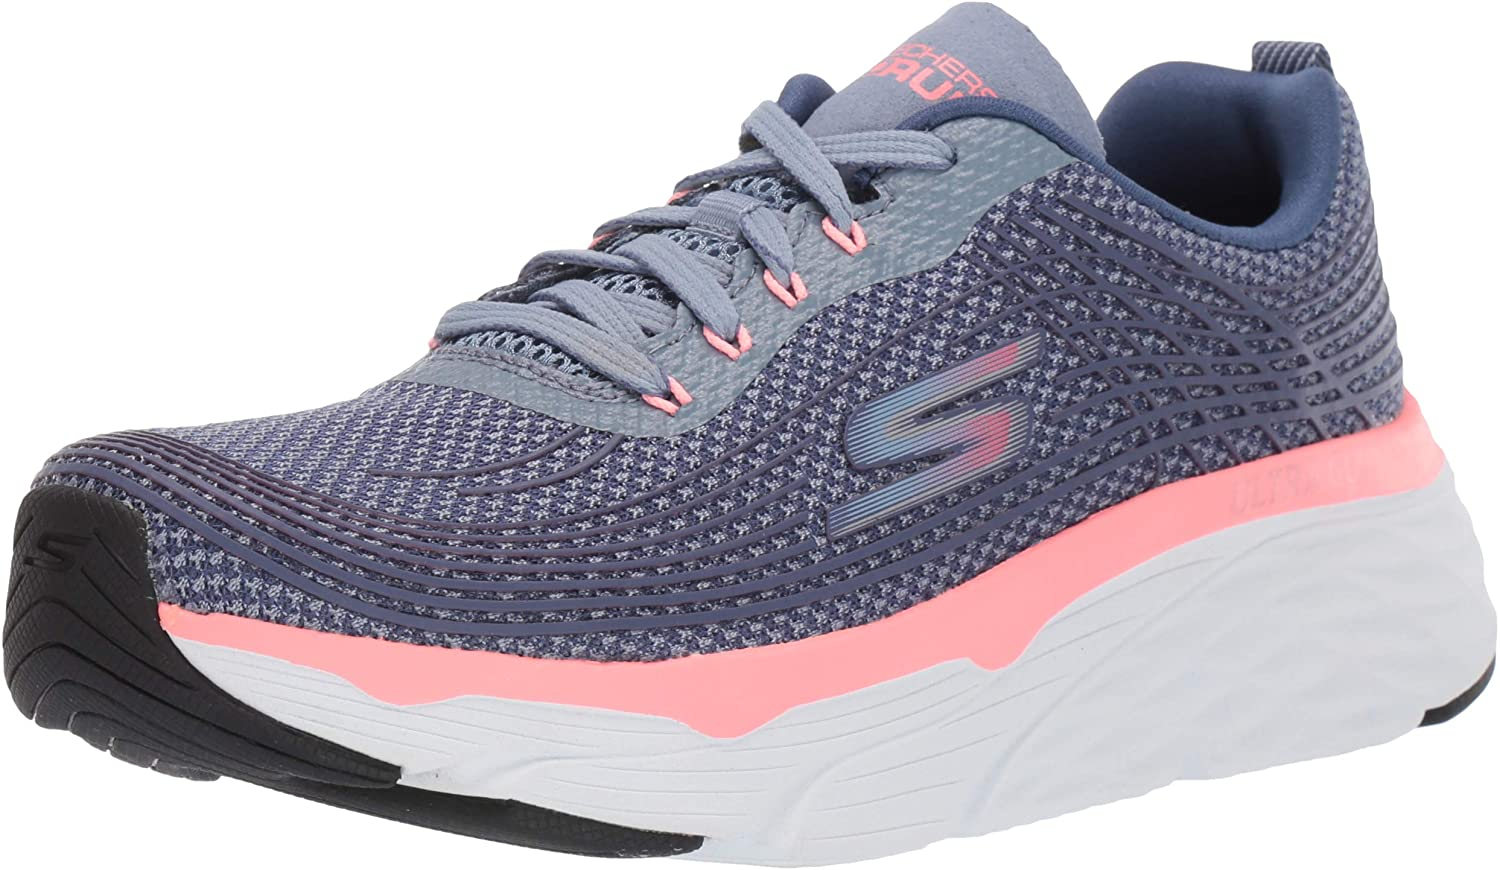 Skechers Women\u0027s Max Cushioning Elite Sneaker